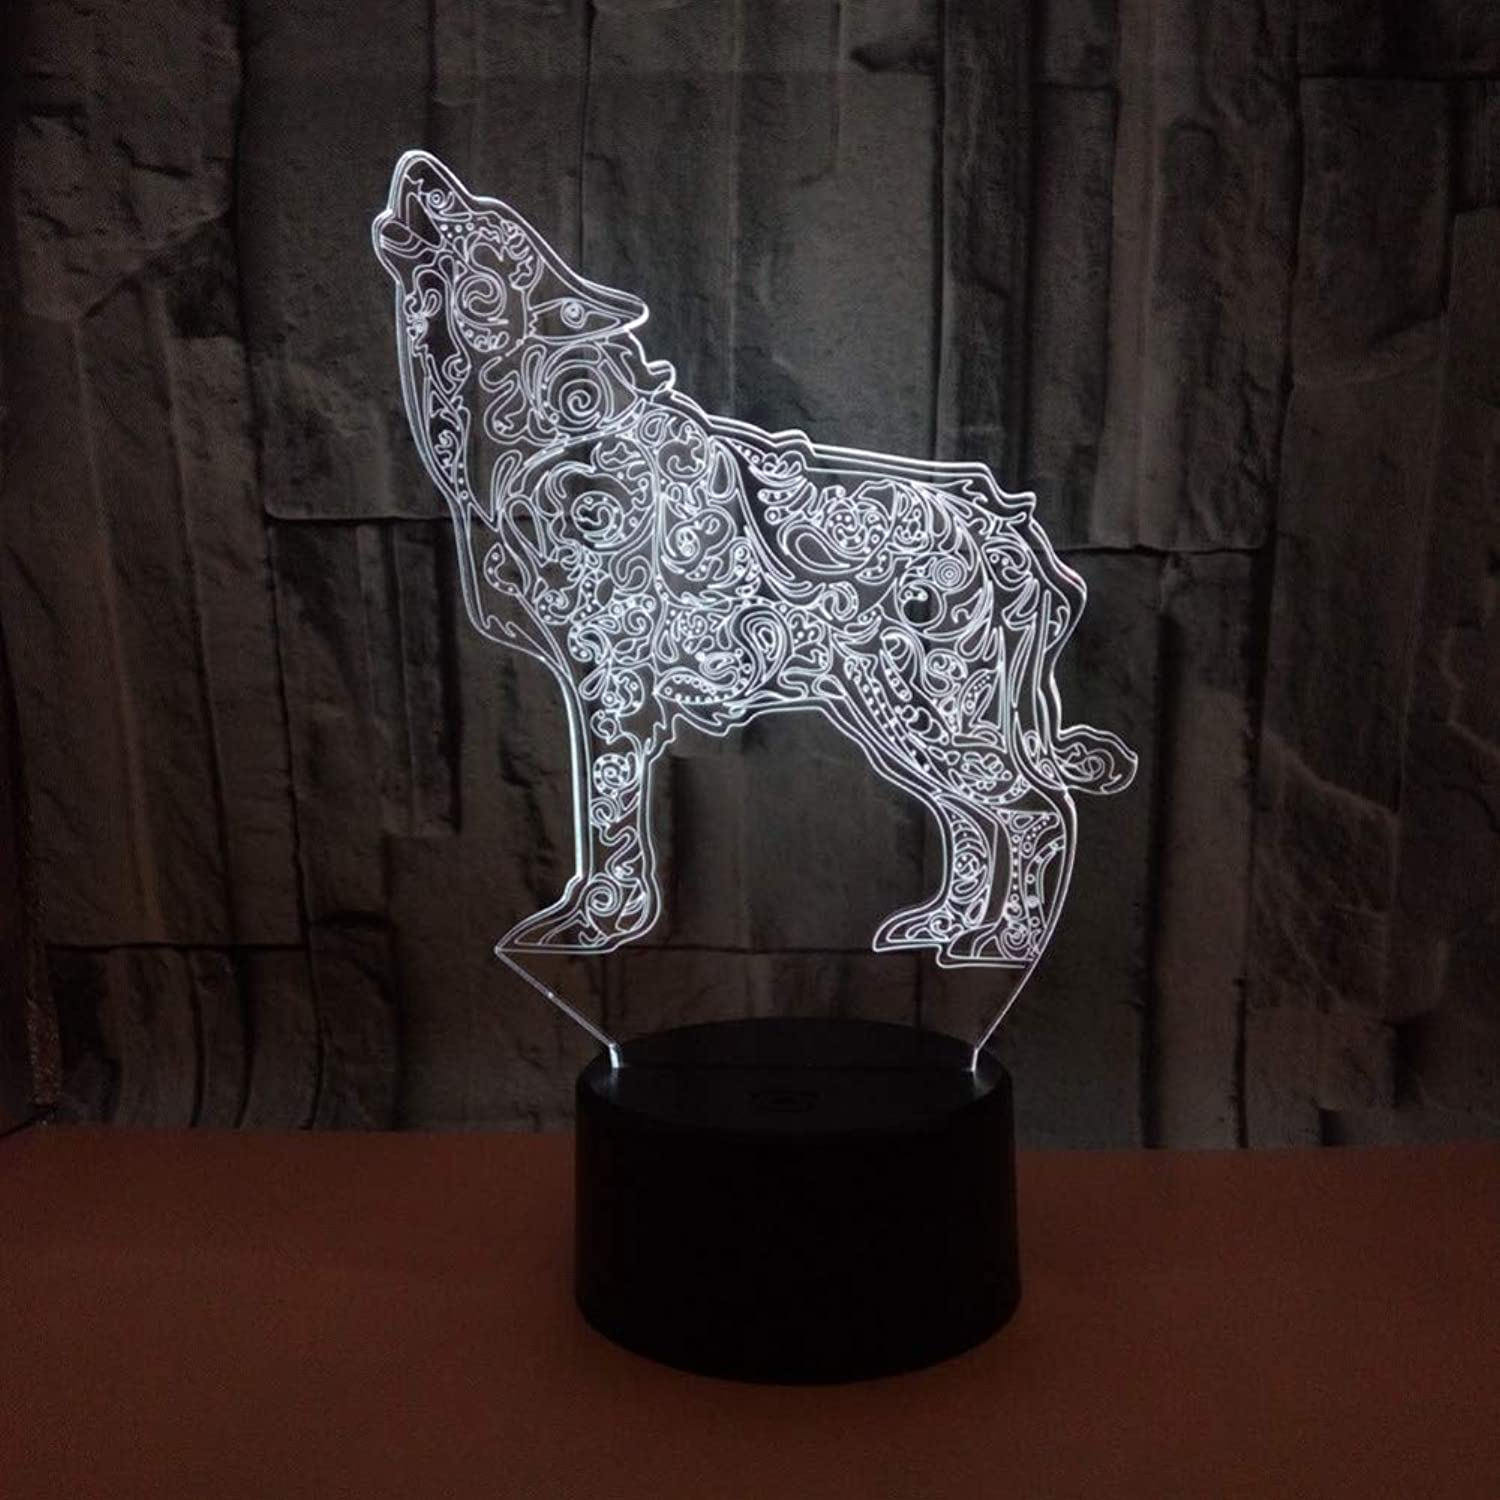 KAIYED 3D Night Light New Wolf 3D Acrylic Lamp 3D Visual Small Desk Lamp Table Lamps for Living Room Night Light